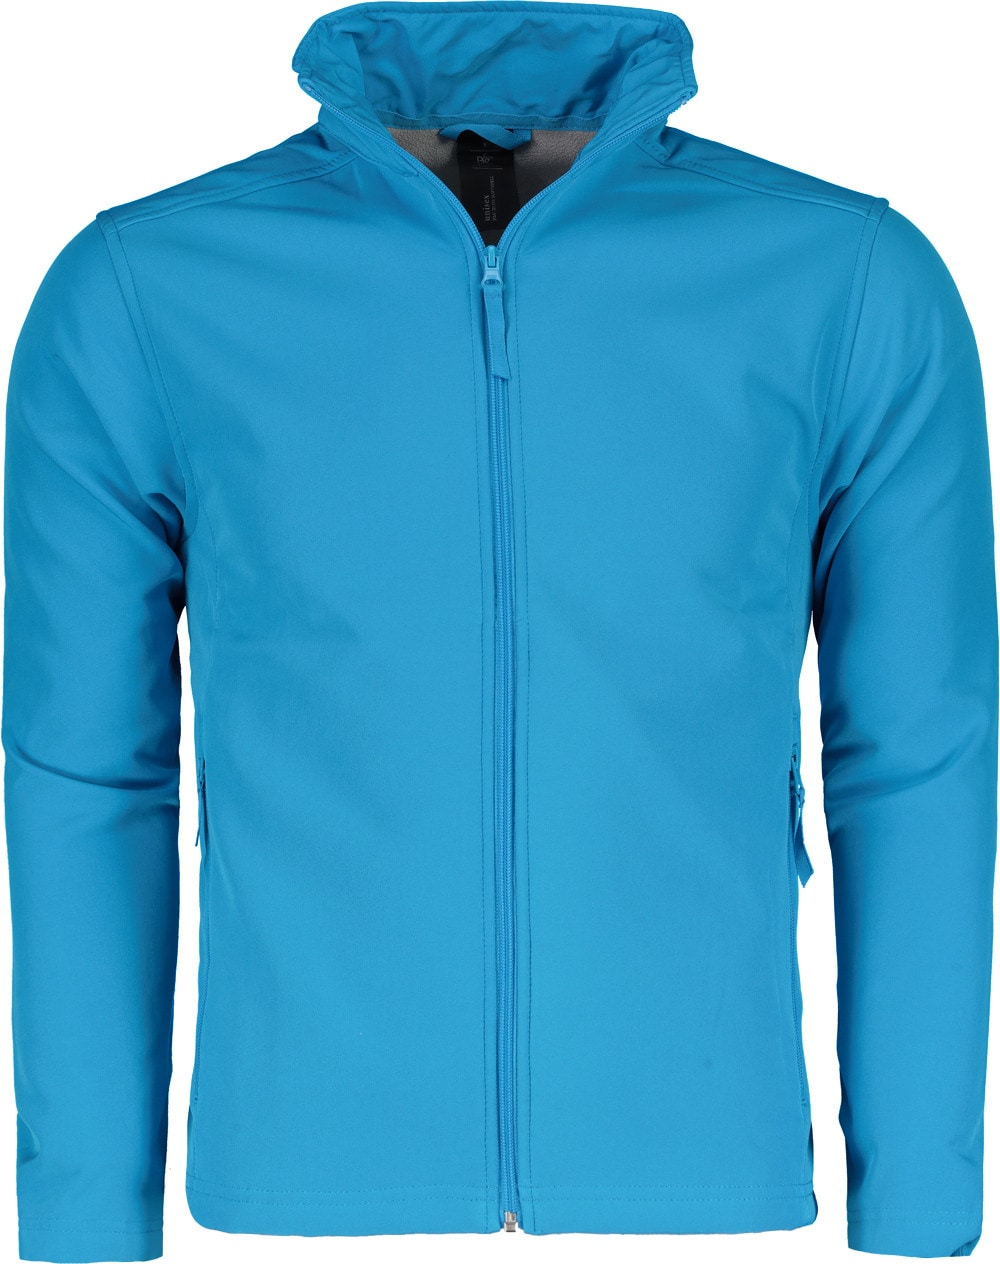 Men's Jacket B&C Softshell